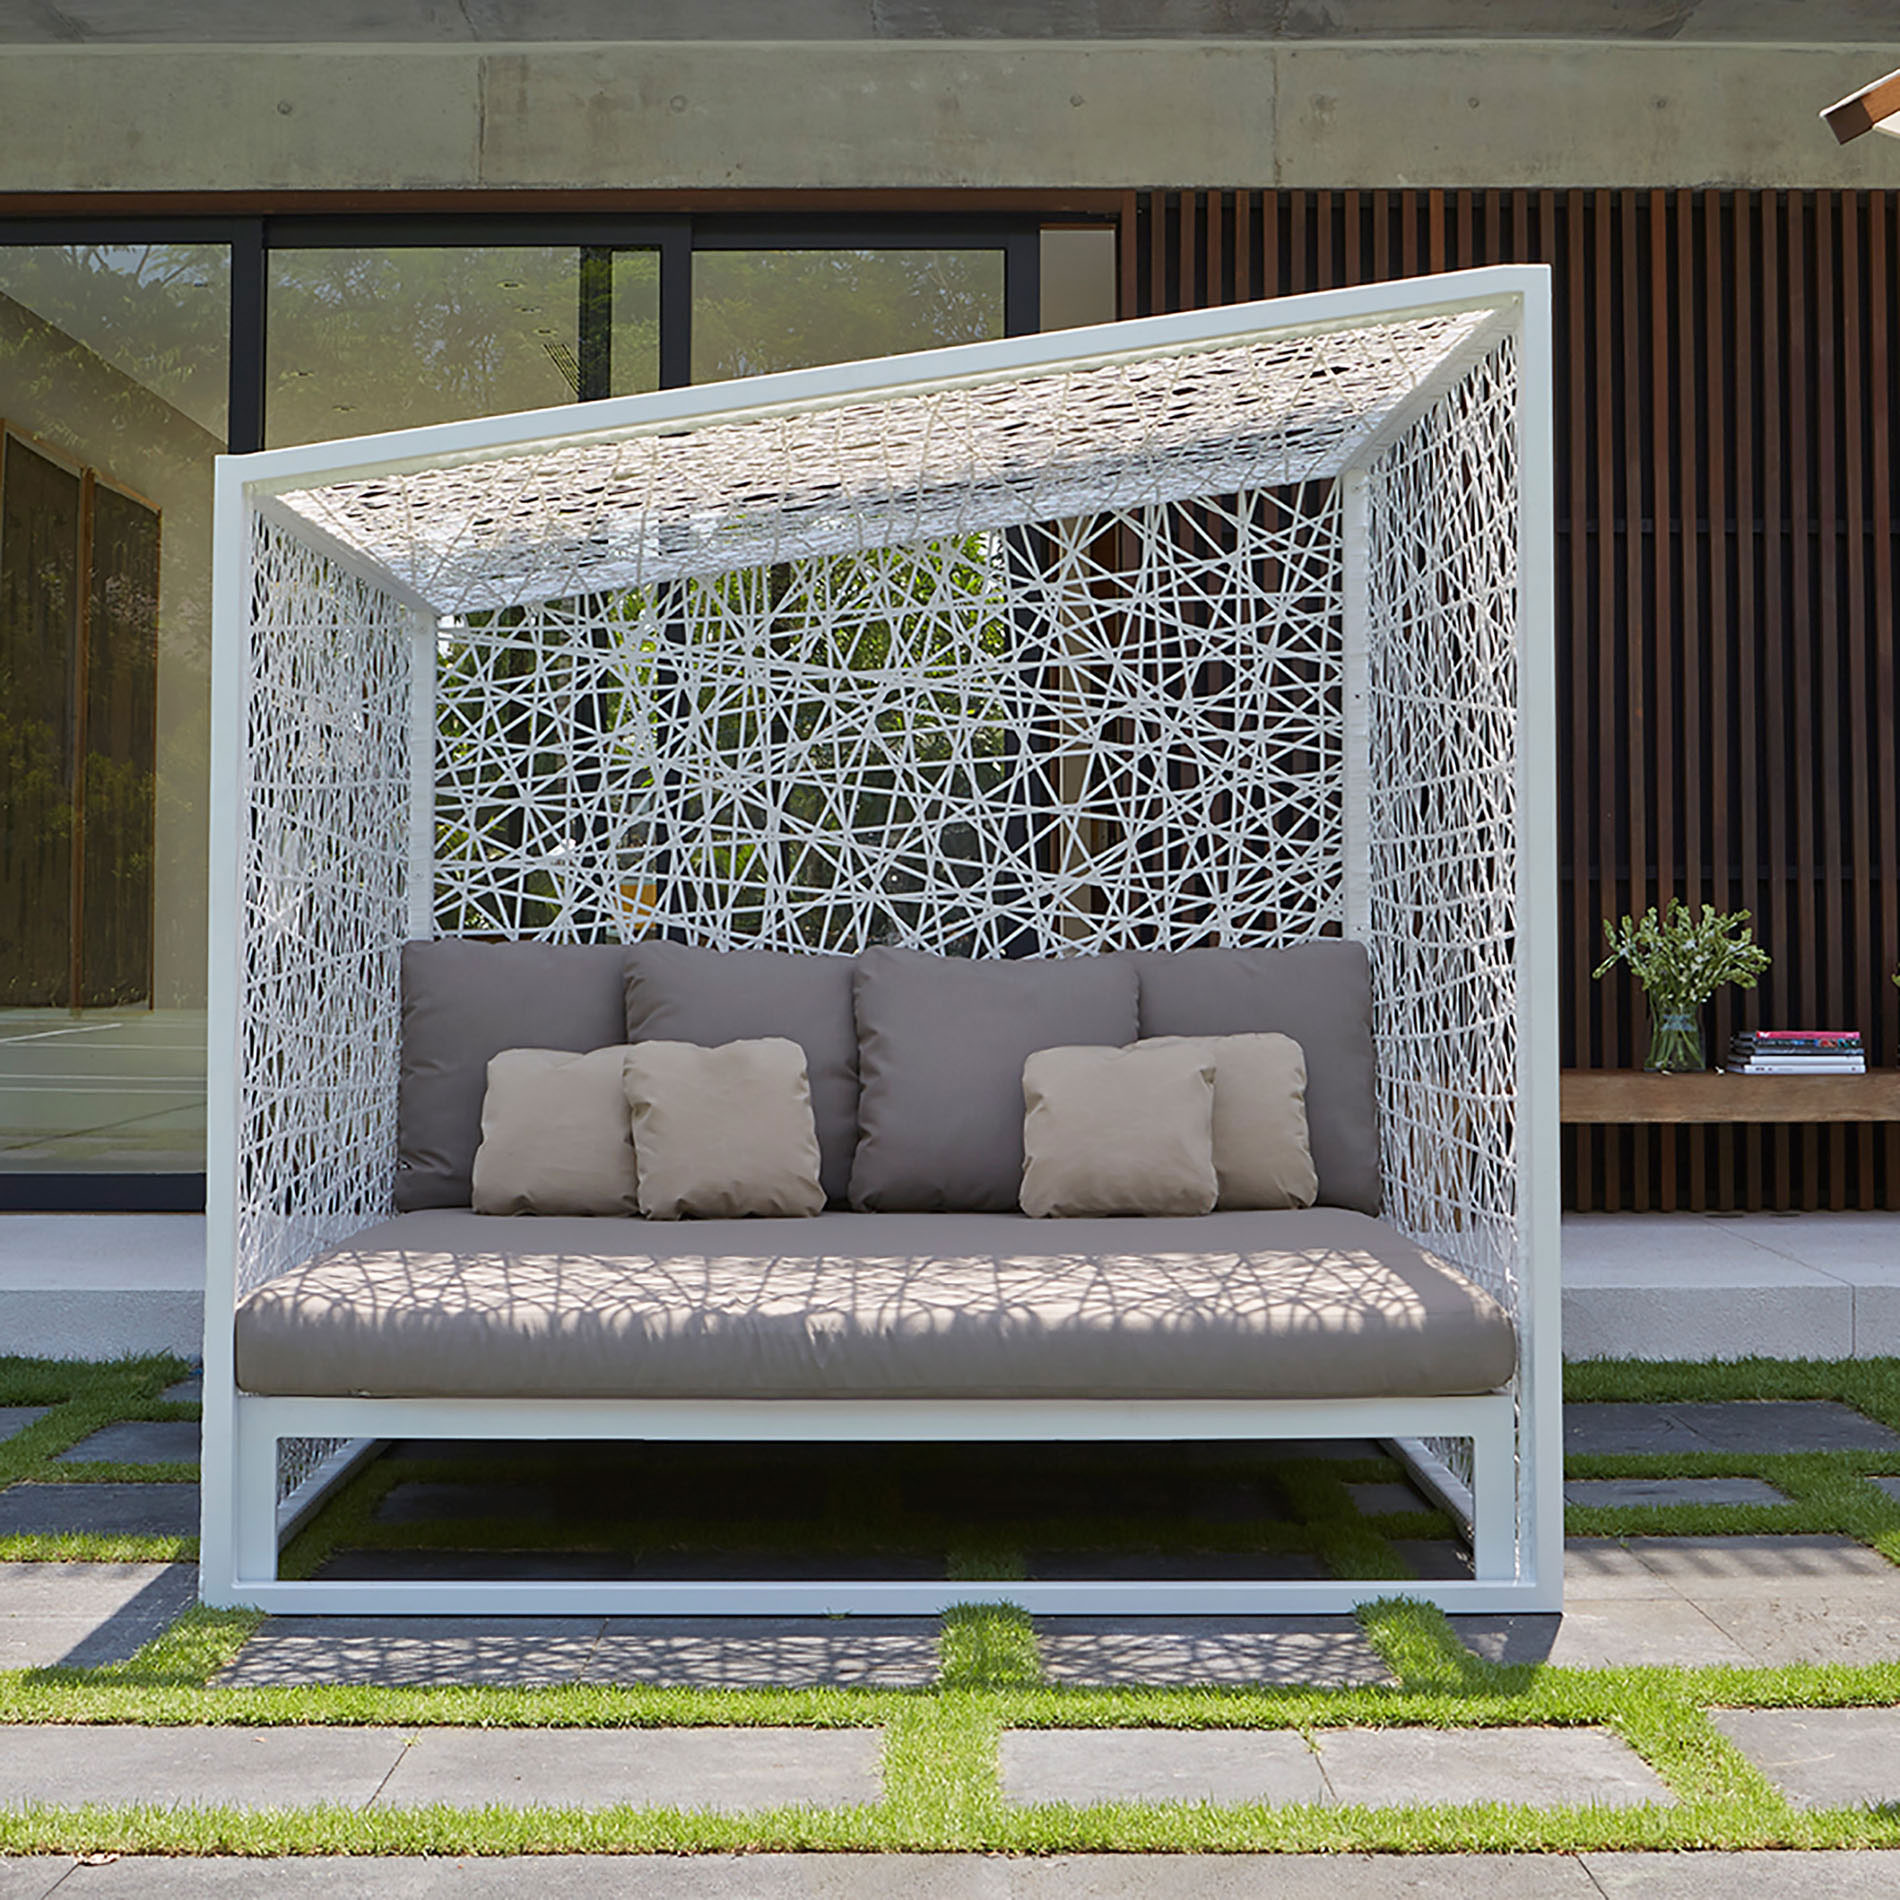 outdoor sofa, luxury outdoor sofa bed, luxury and stylish sunbed for outdoor use, kanapes krevati gia exoteriko xoro, sunbed for tanning stylish with ropes, extreme design sunbed for outdoor use, sofa bed for outdoor use, outdoor bed, high quality sunbed,